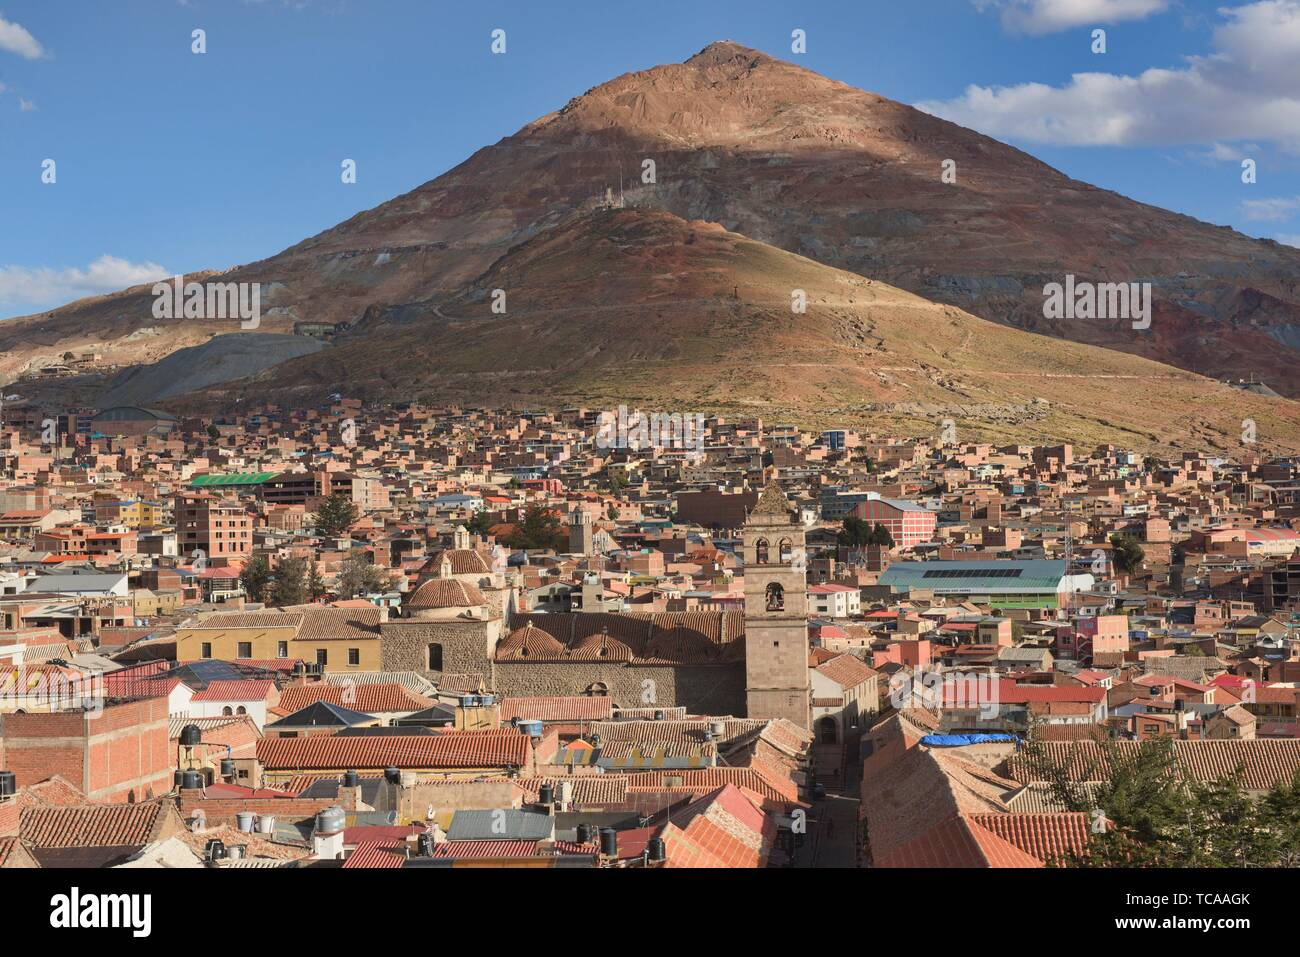 Rooftop view of Cerro Rico mine from the San Francisco Church and Convent, Potosí, Bolivia. - Stock Image